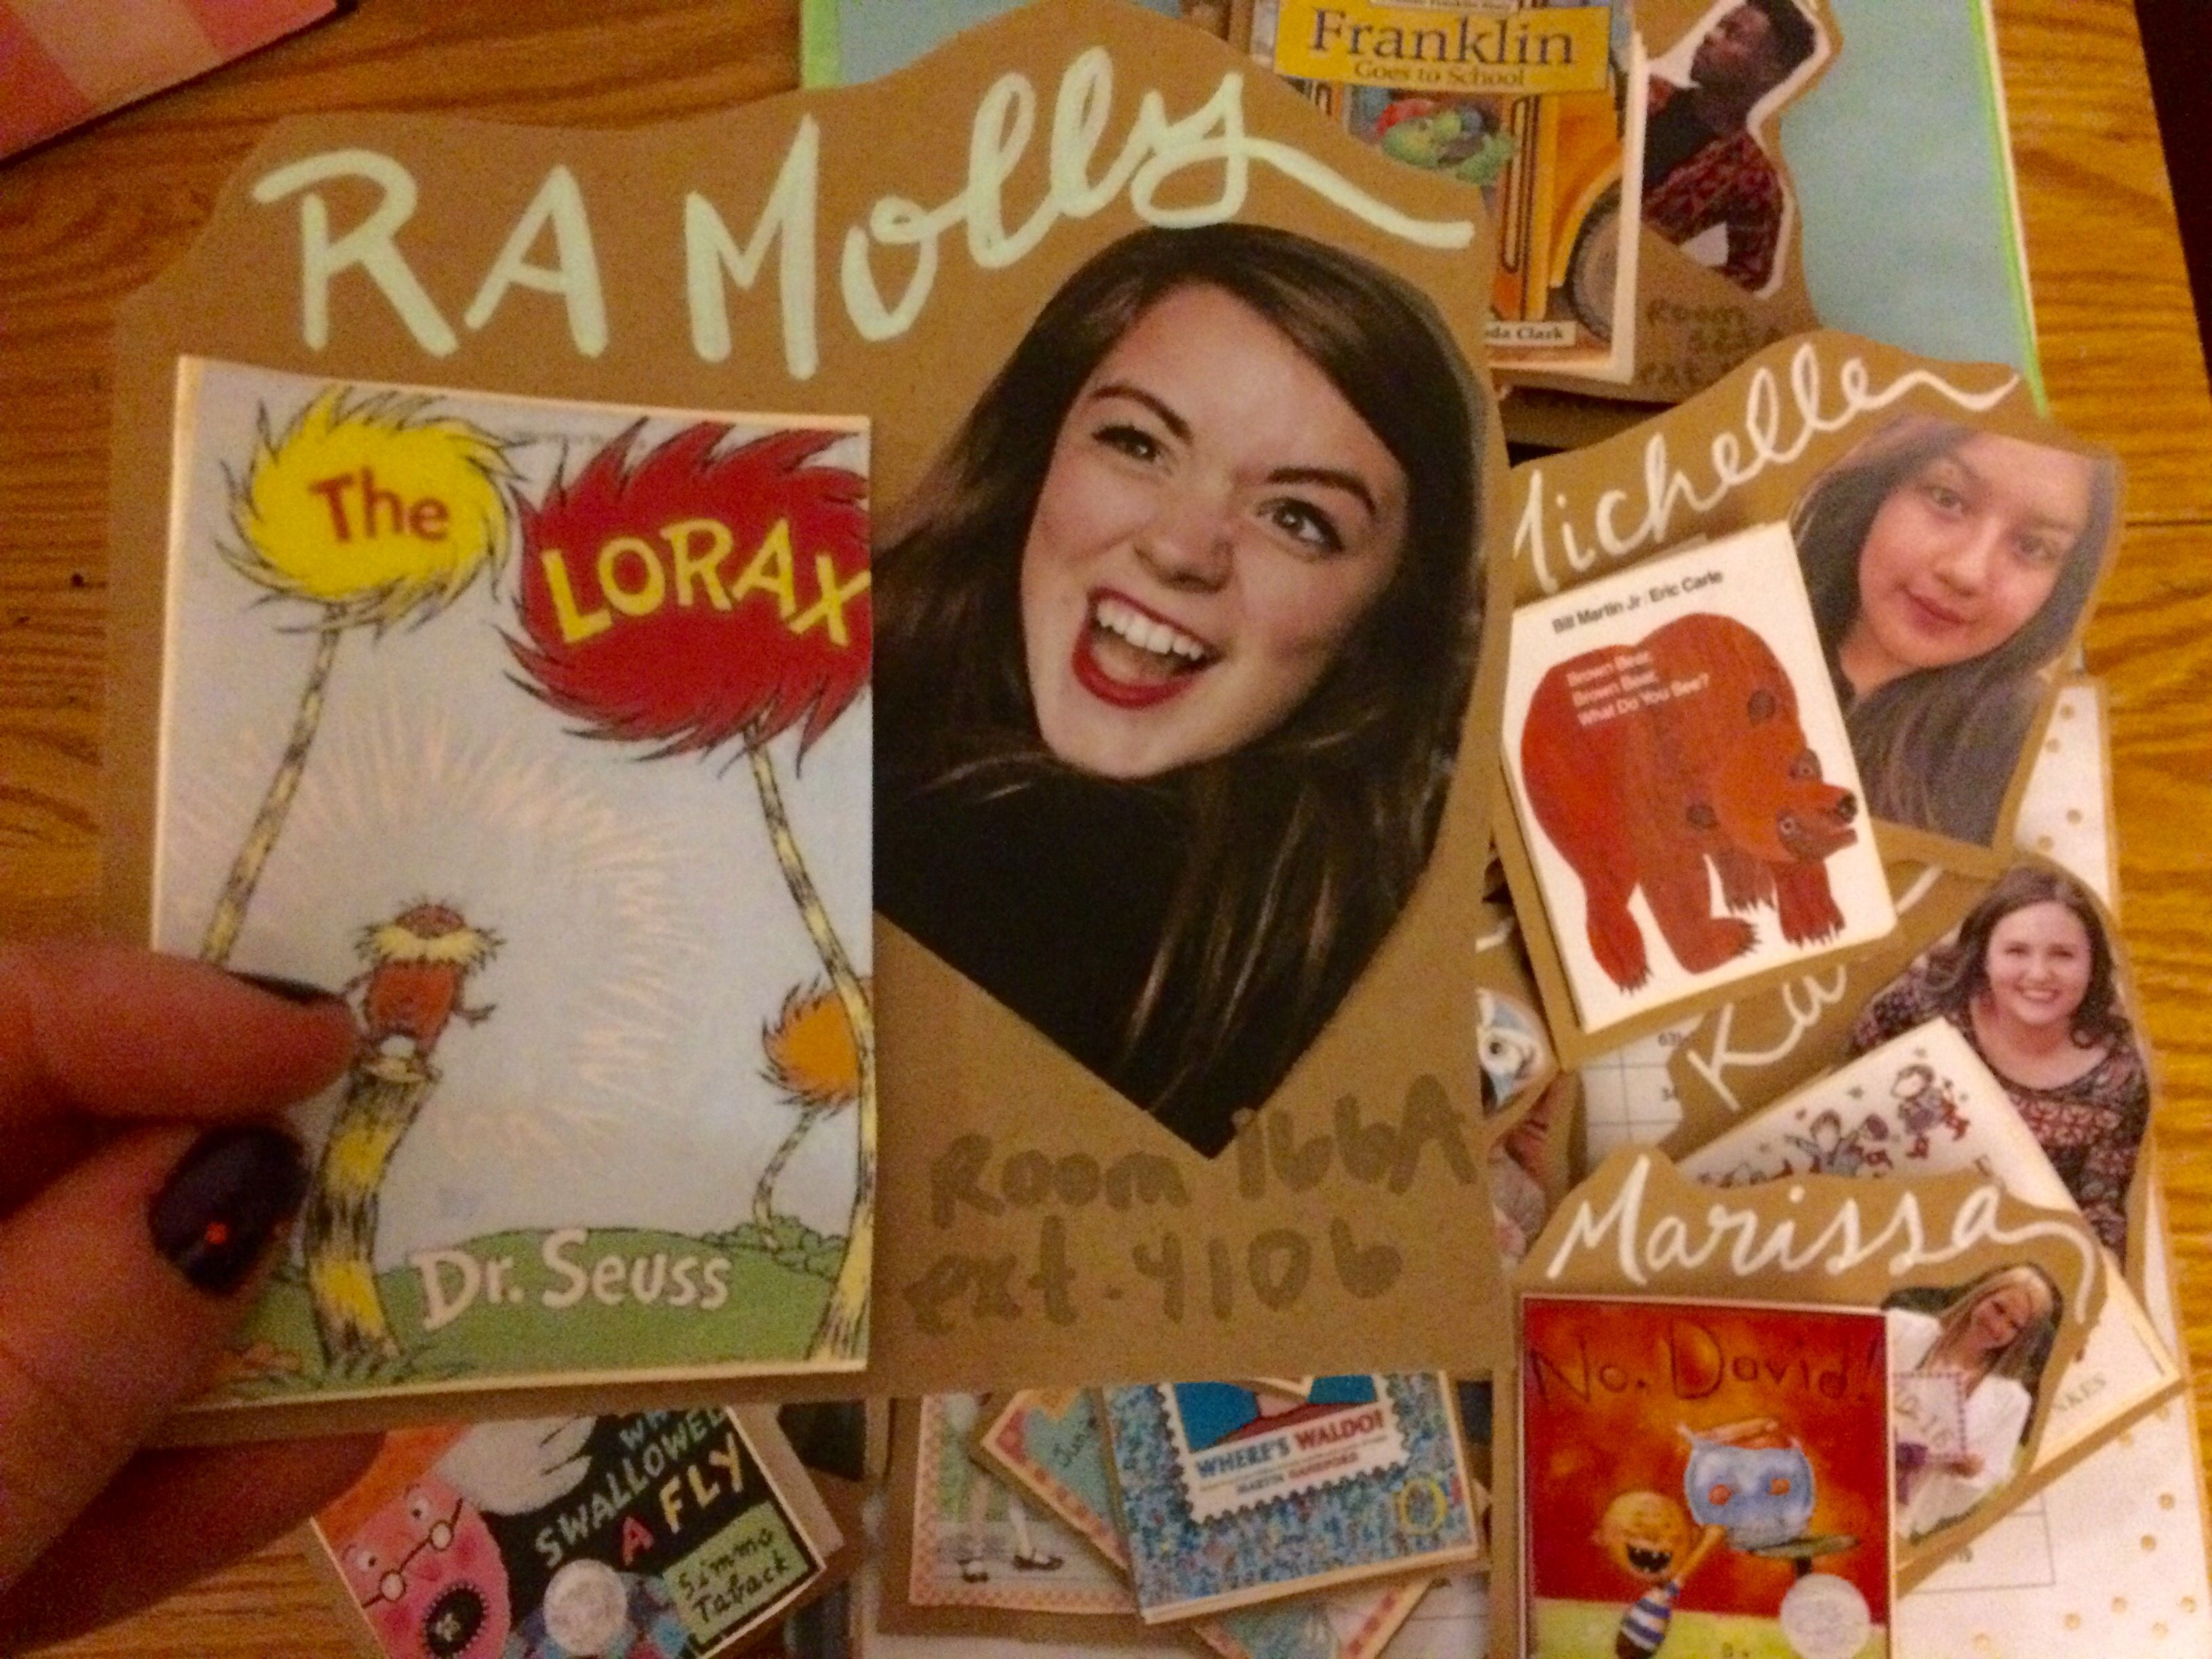 Pin by Molly on My crafts Book cover, The lorax, Seuss